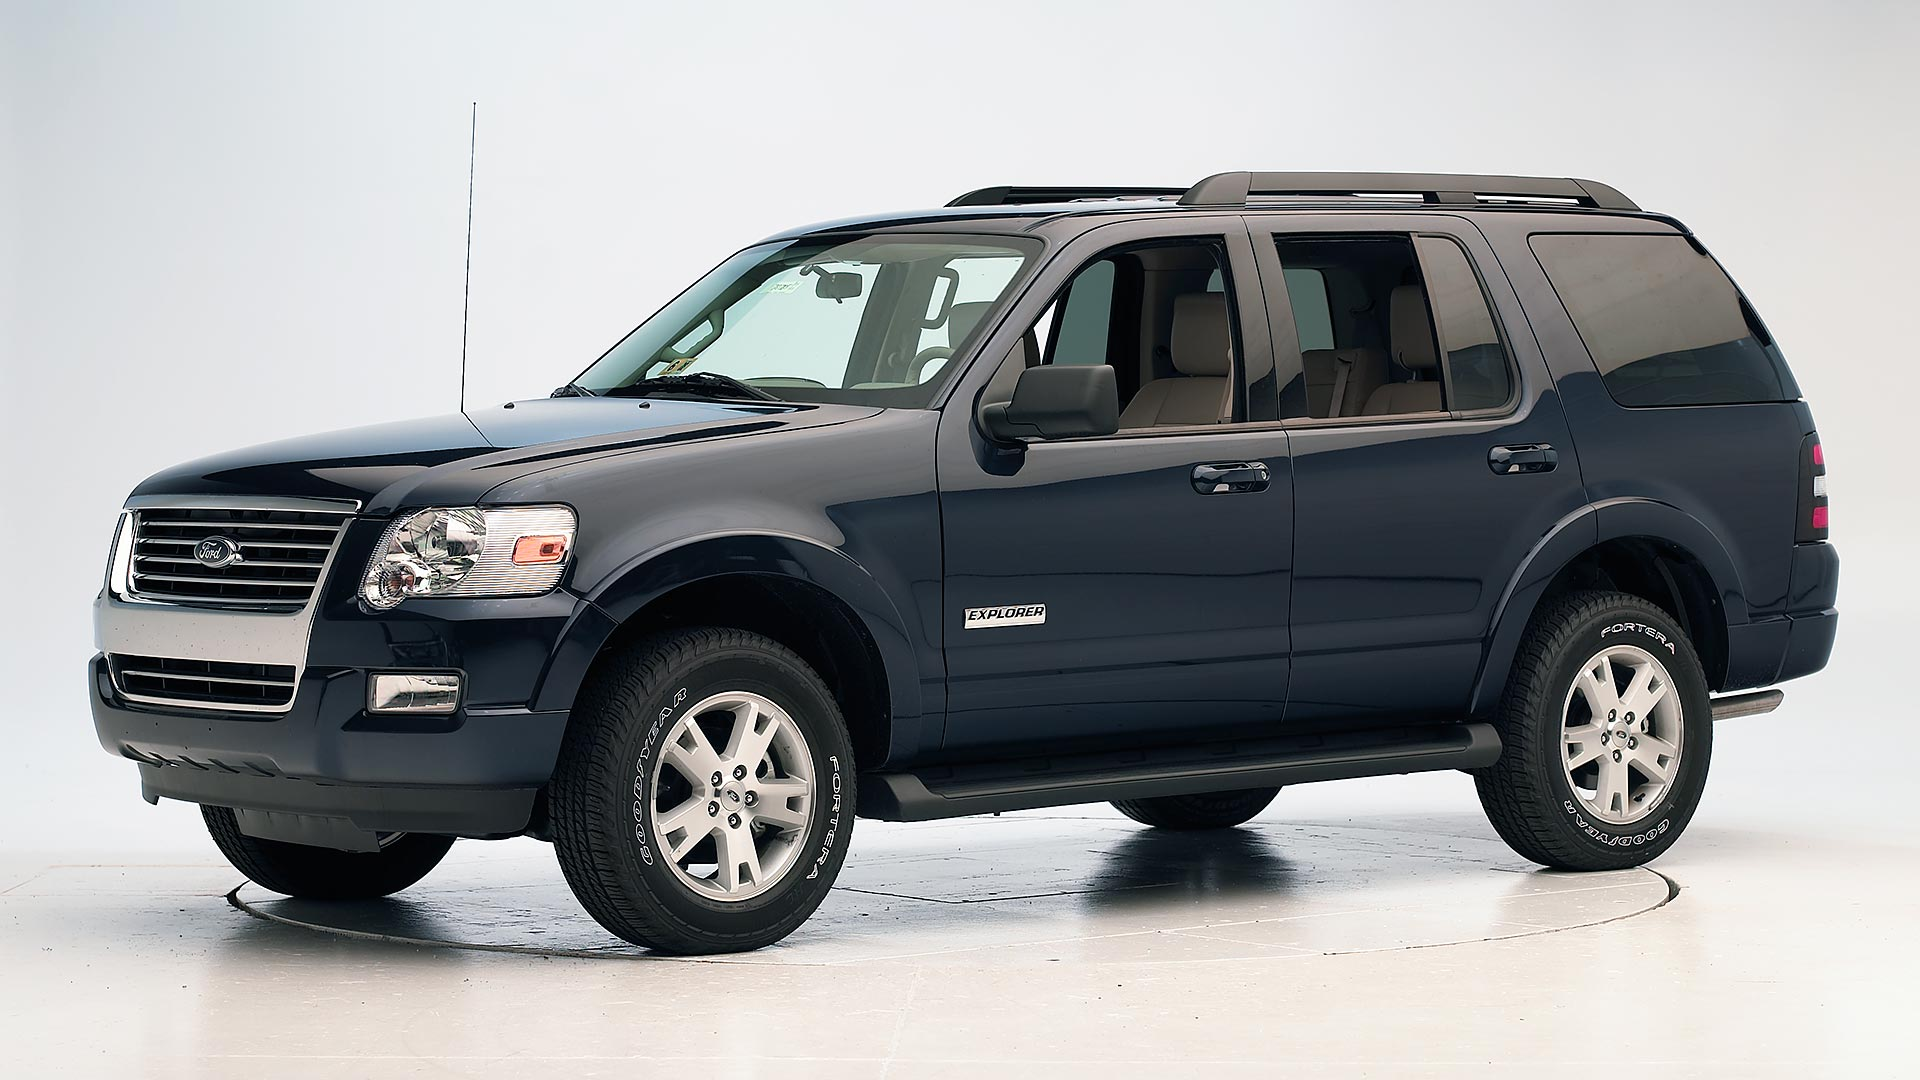 2007 Ford Explorer 4-door SUV